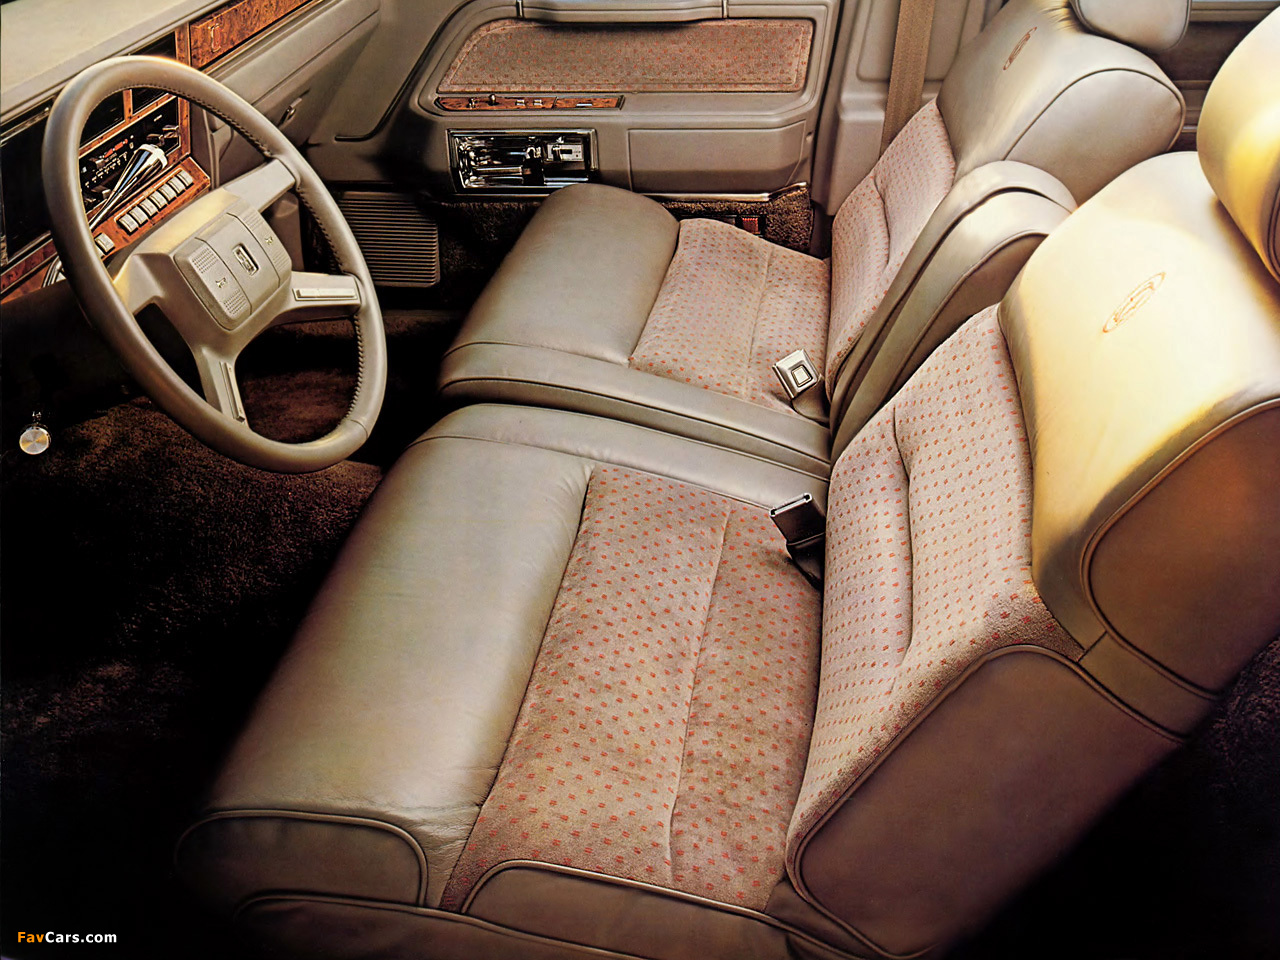 images of lincoln town car 1985 89 1280x960. Black Bedroom Furniture Sets. Home Design Ideas